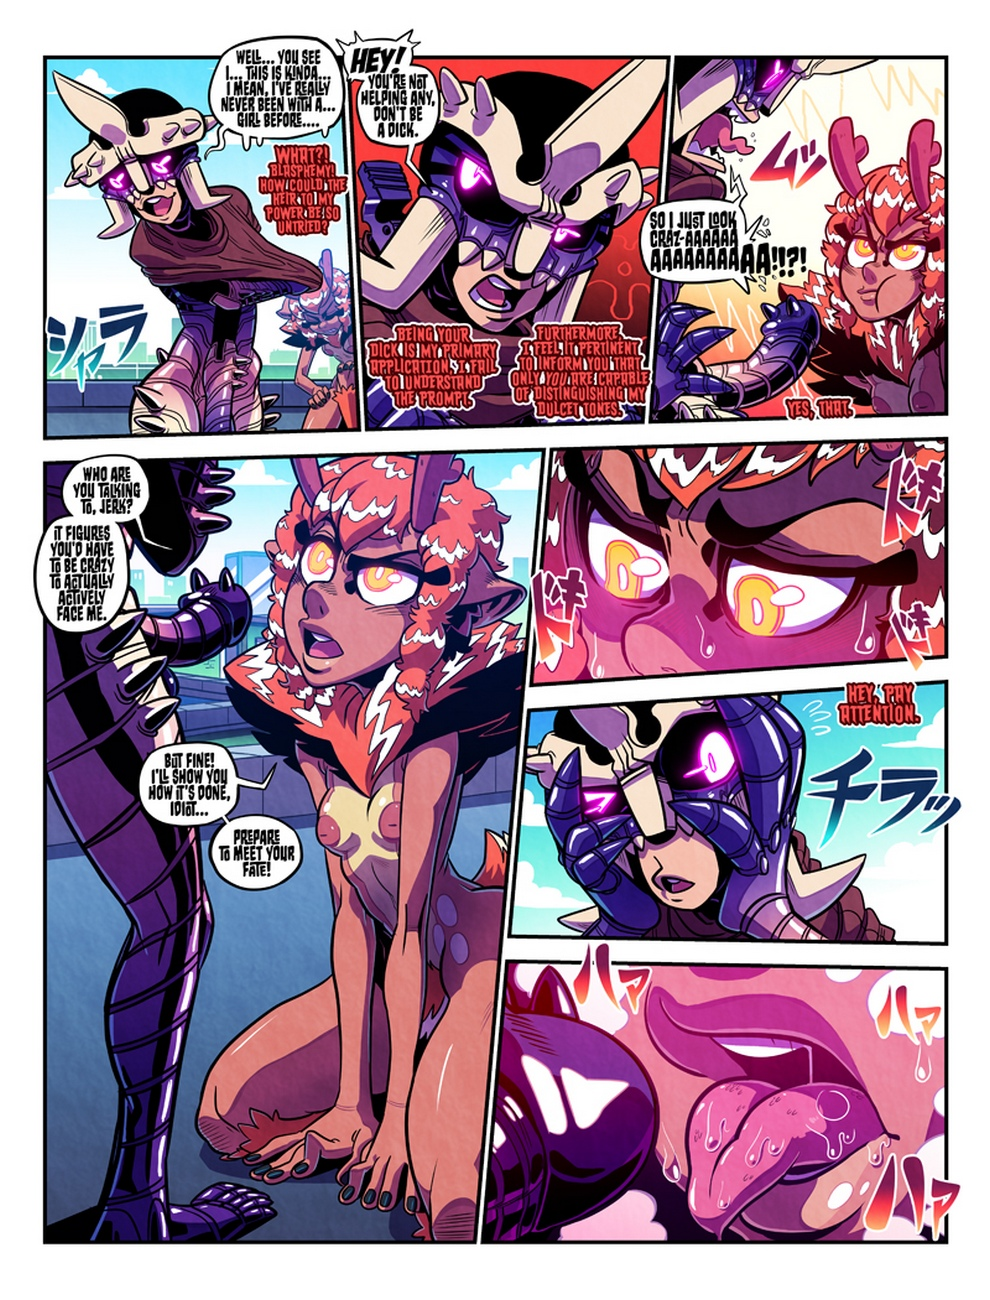 Love-Gun-2-Oh-Deer-Lord 3 free sex comic